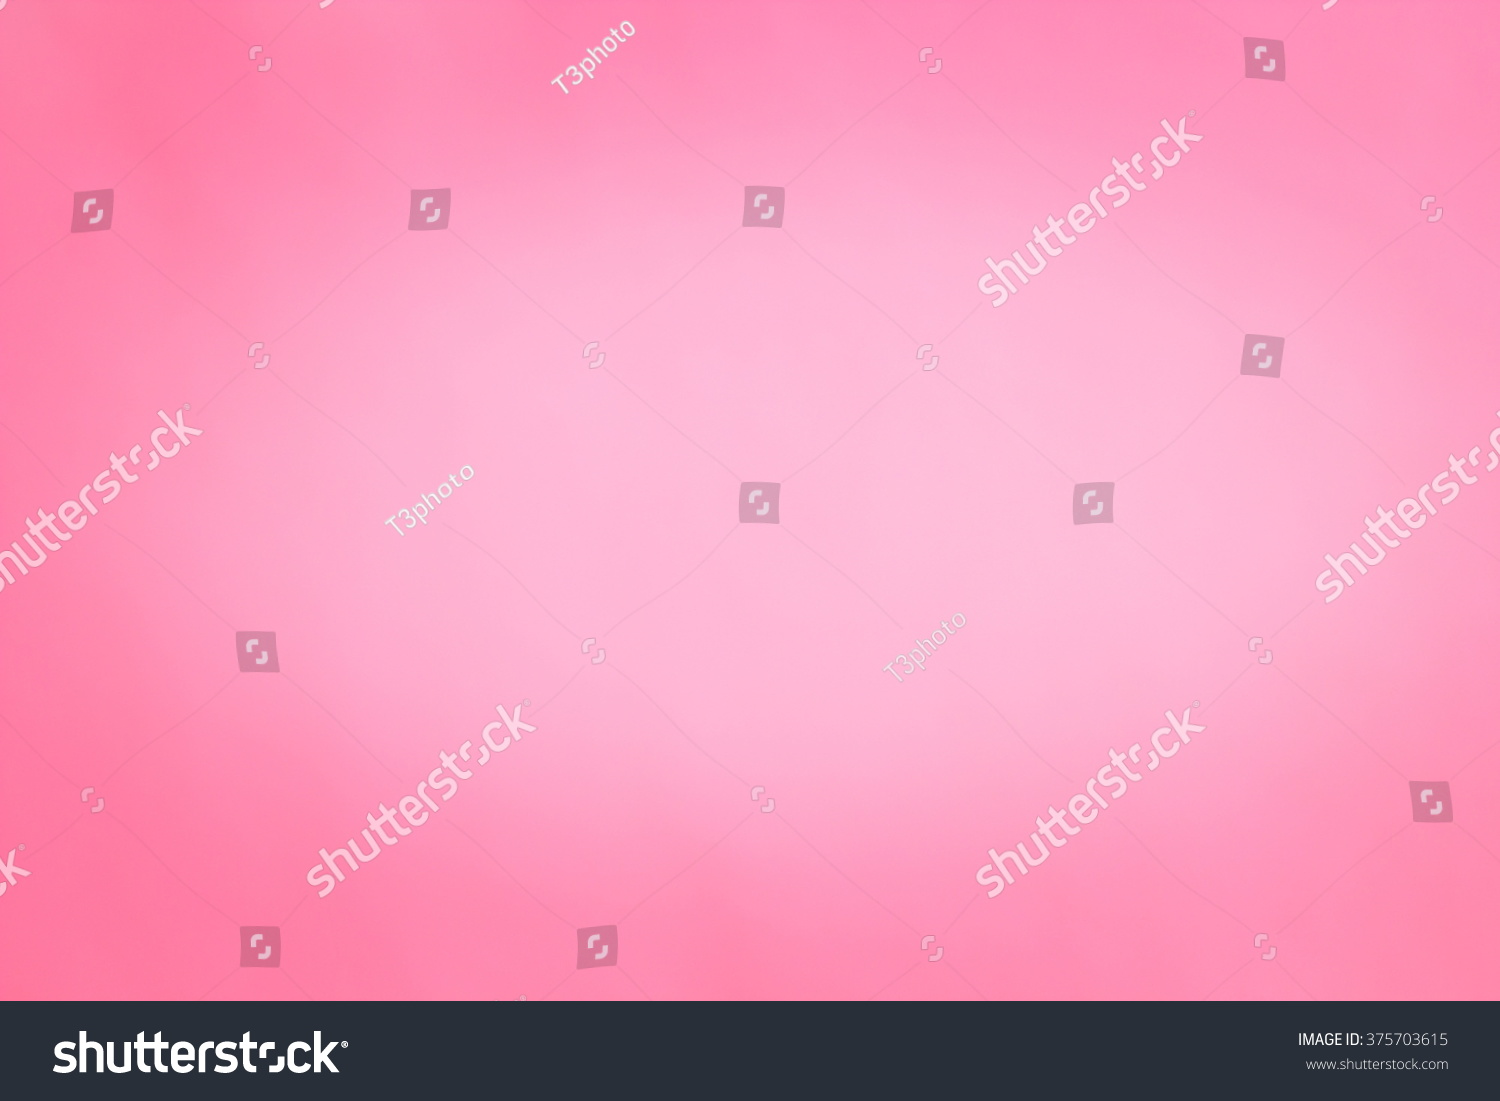 colorful blurred backgrounds / pink background #375703615